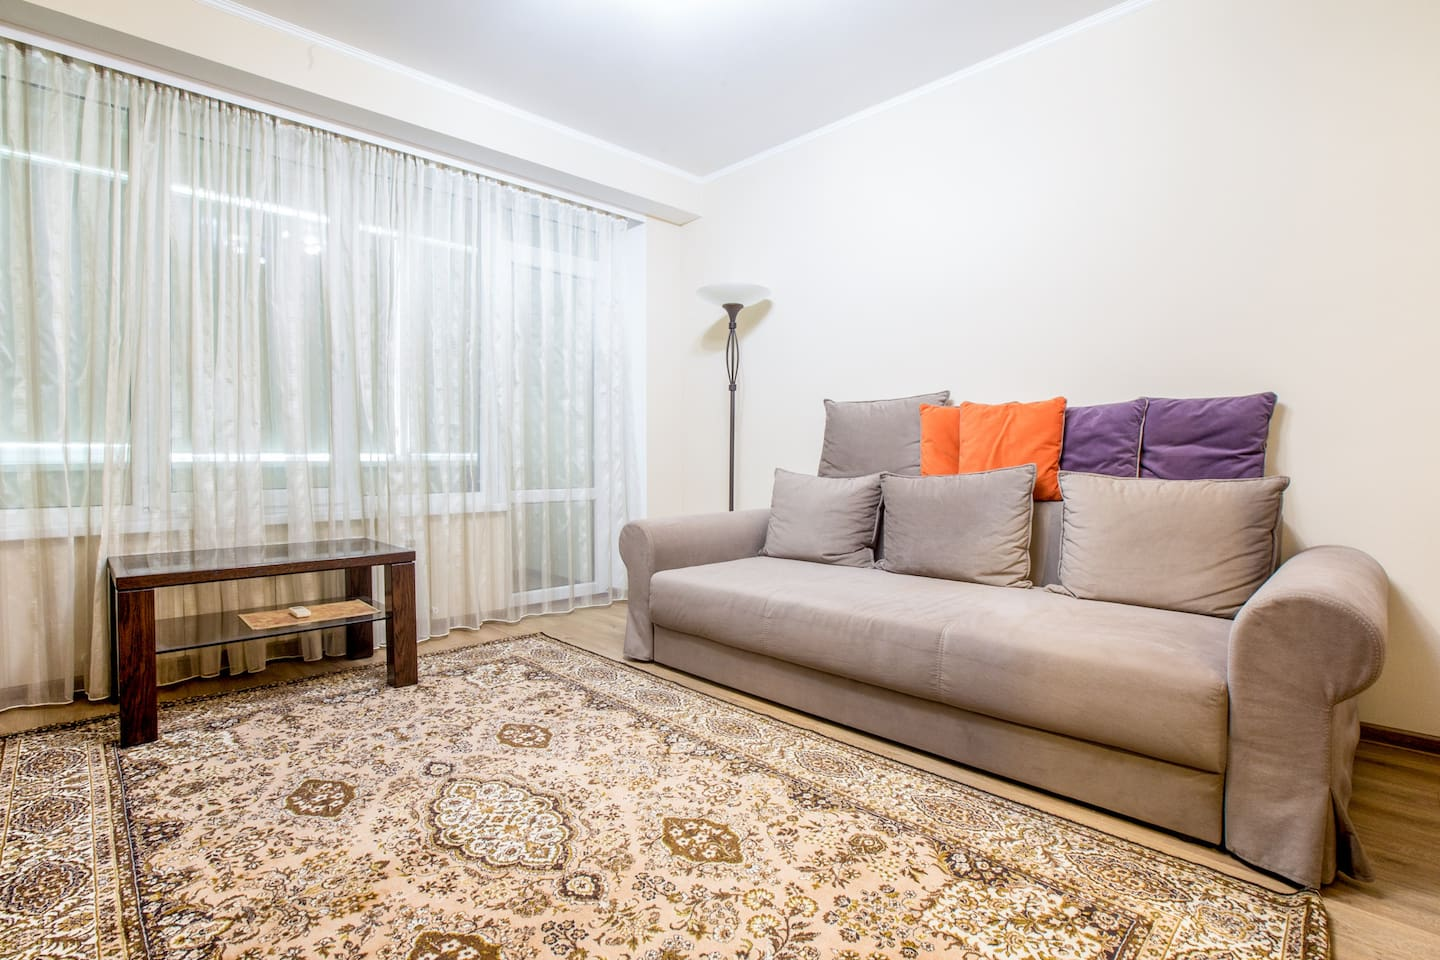 Expandable Sofa in the Living Room